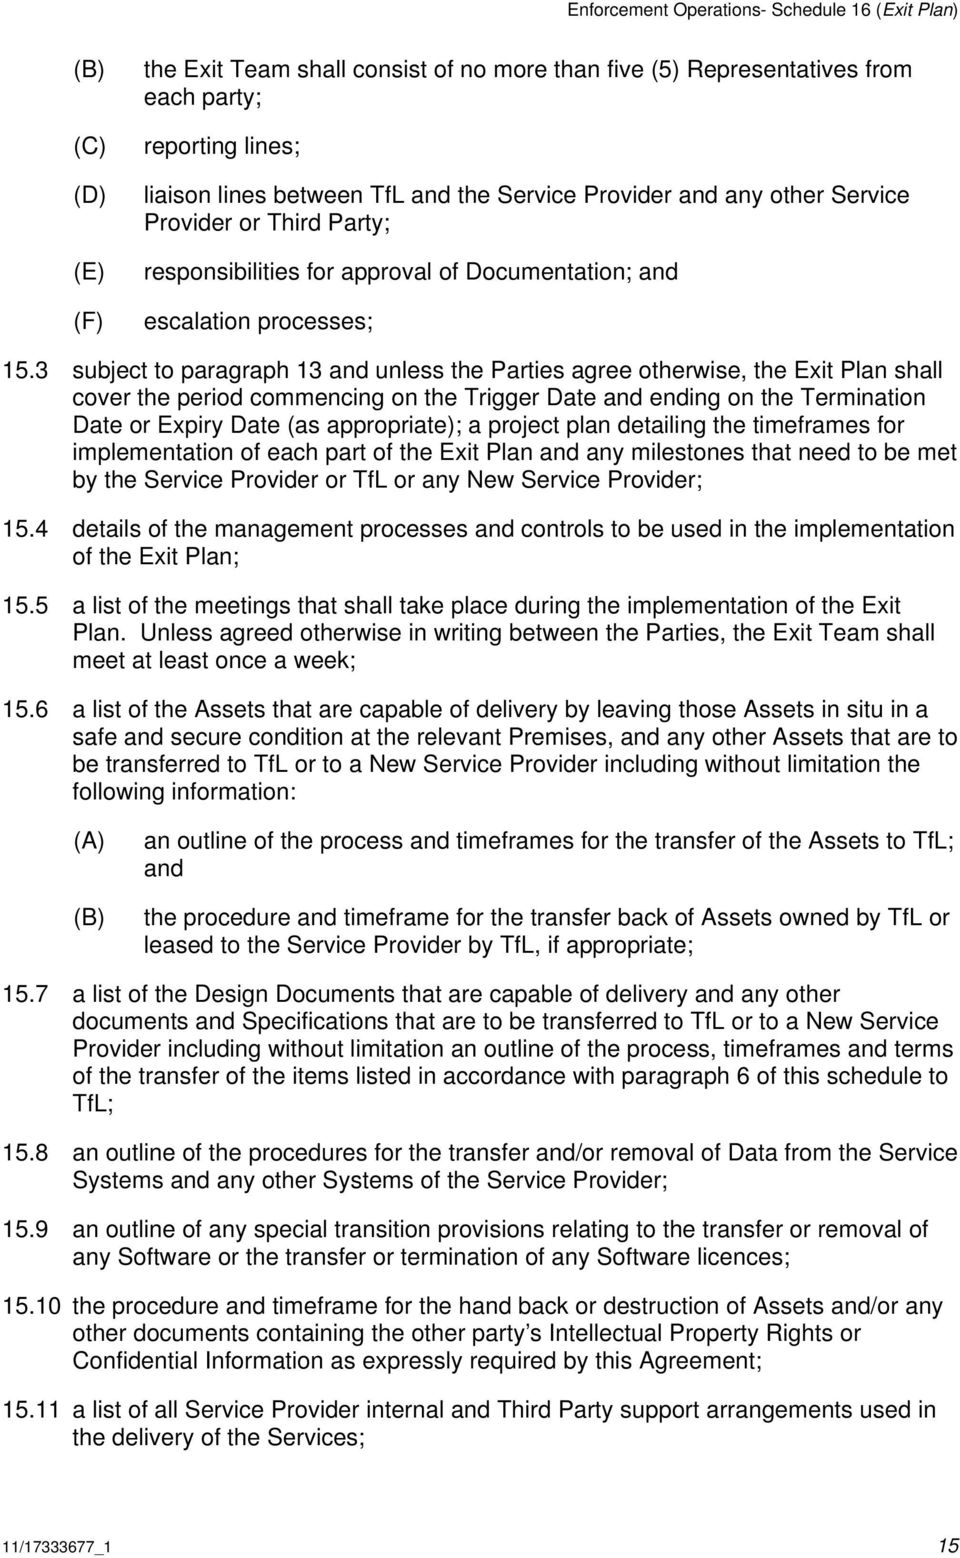 3 subject to paragraph 13 and unless the Parties agree otherwise, the Exit Plan shall cover the period commencing on the Trigger Date and ending on the Termination Date or Expiry Date (as